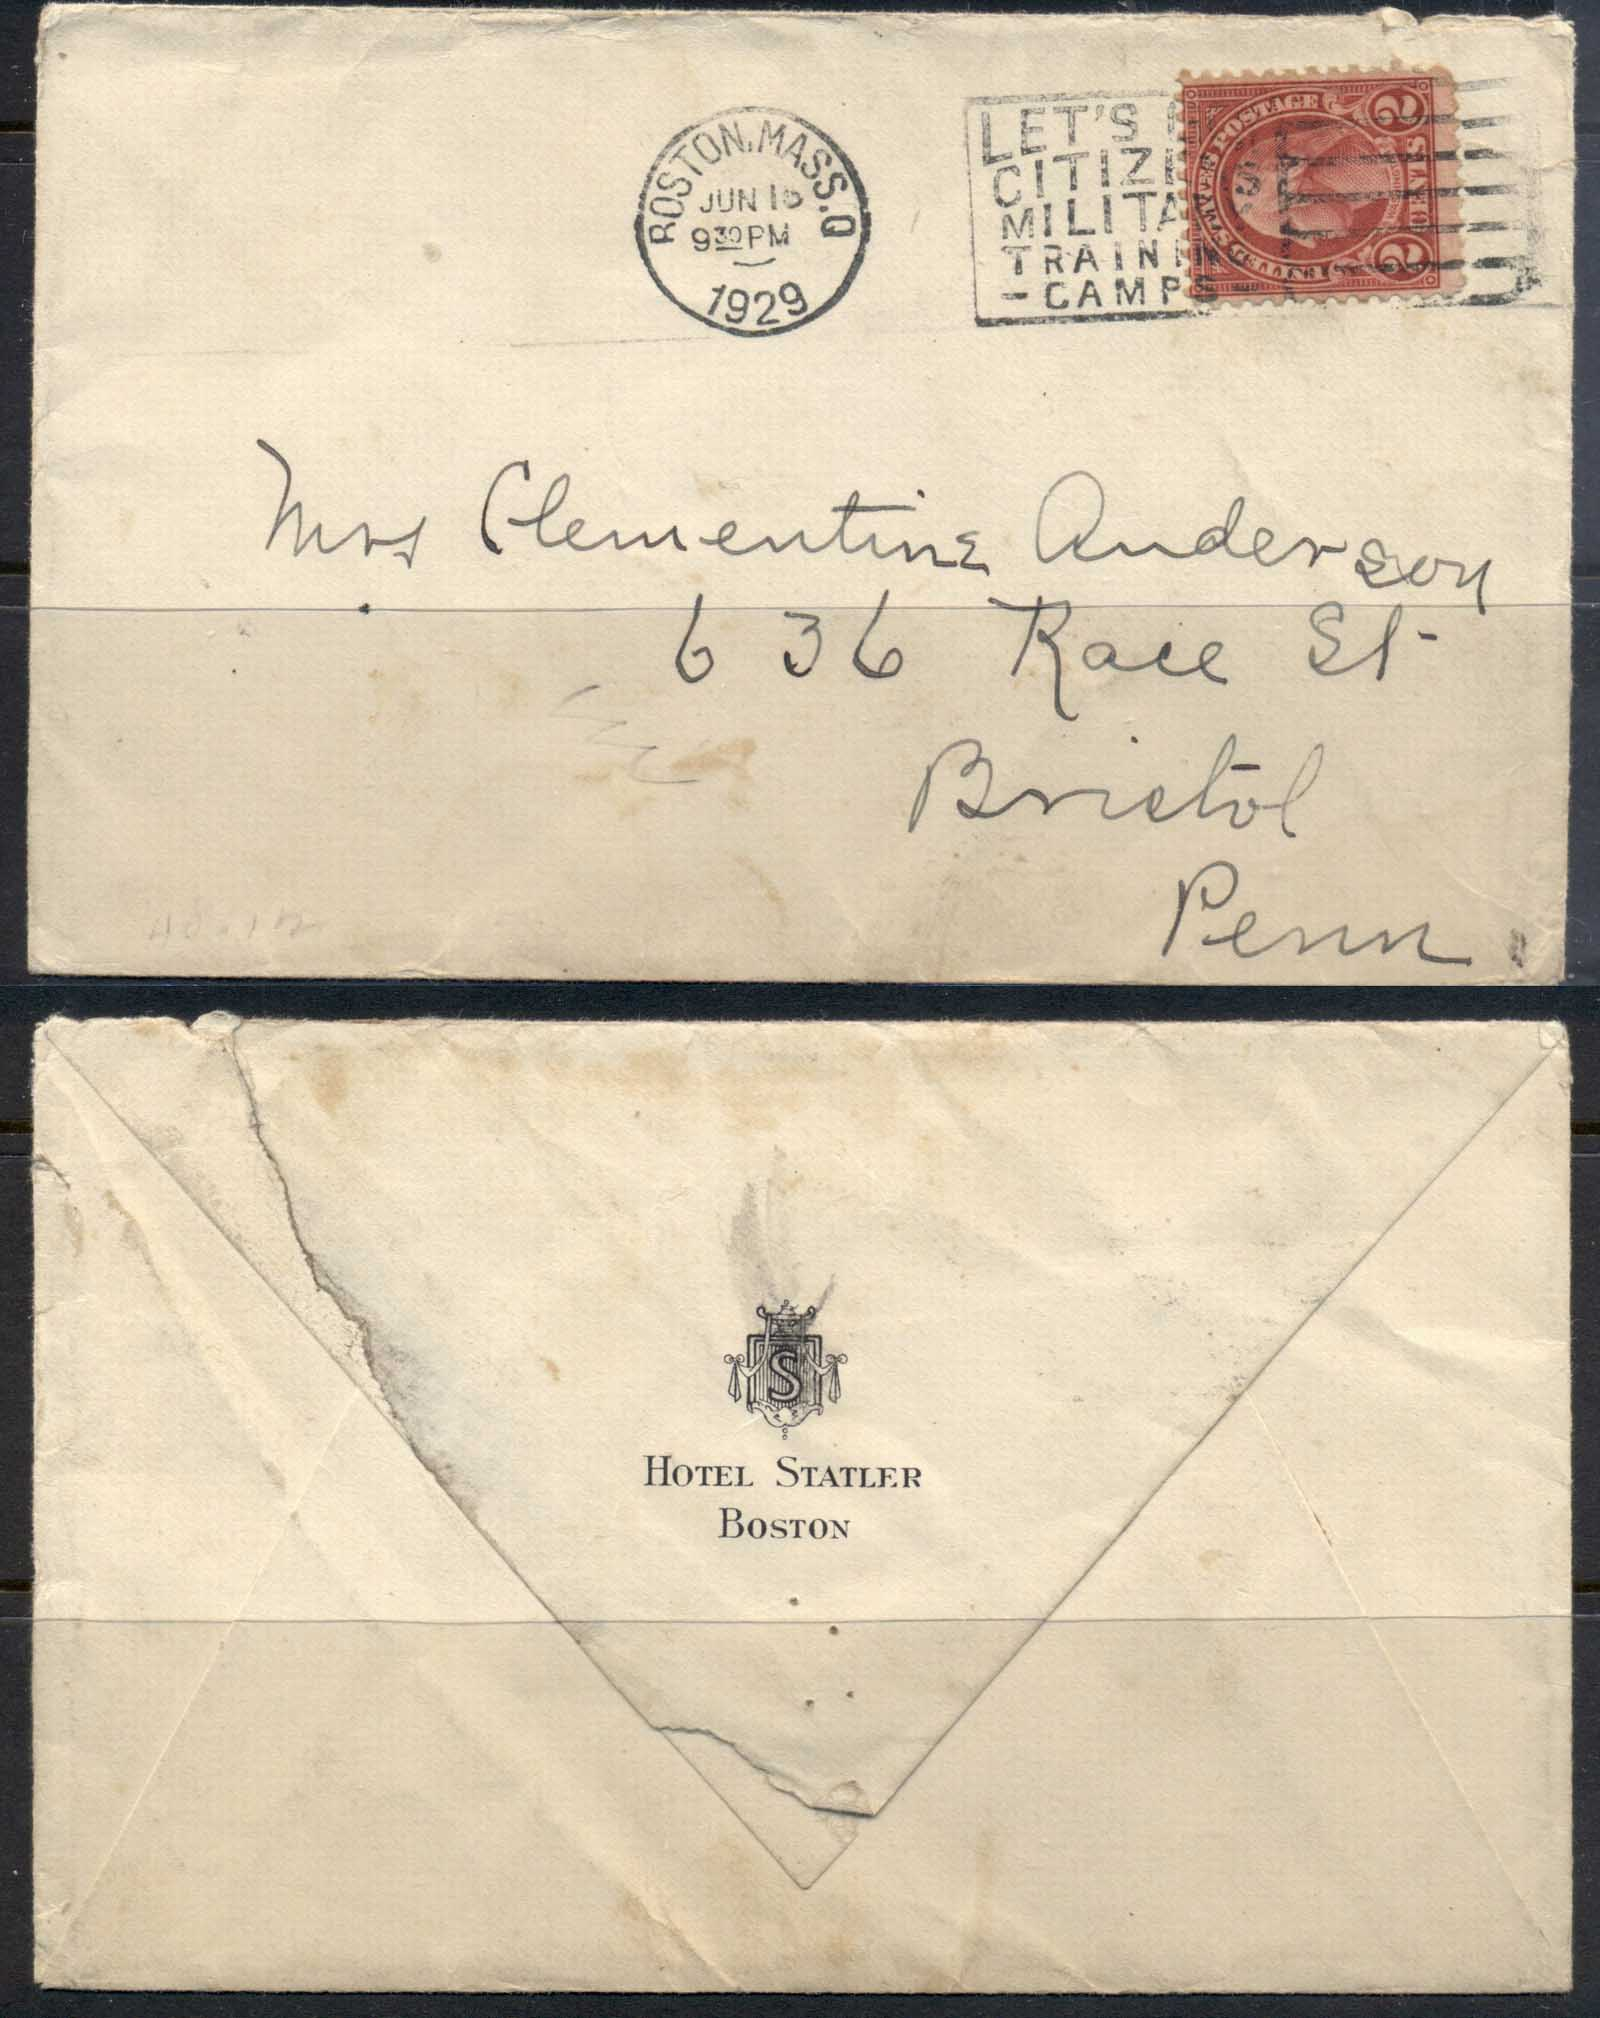 USA 1922-38 Fourth Bureau Washington 2c Statler Hotel Boston 1929 cover